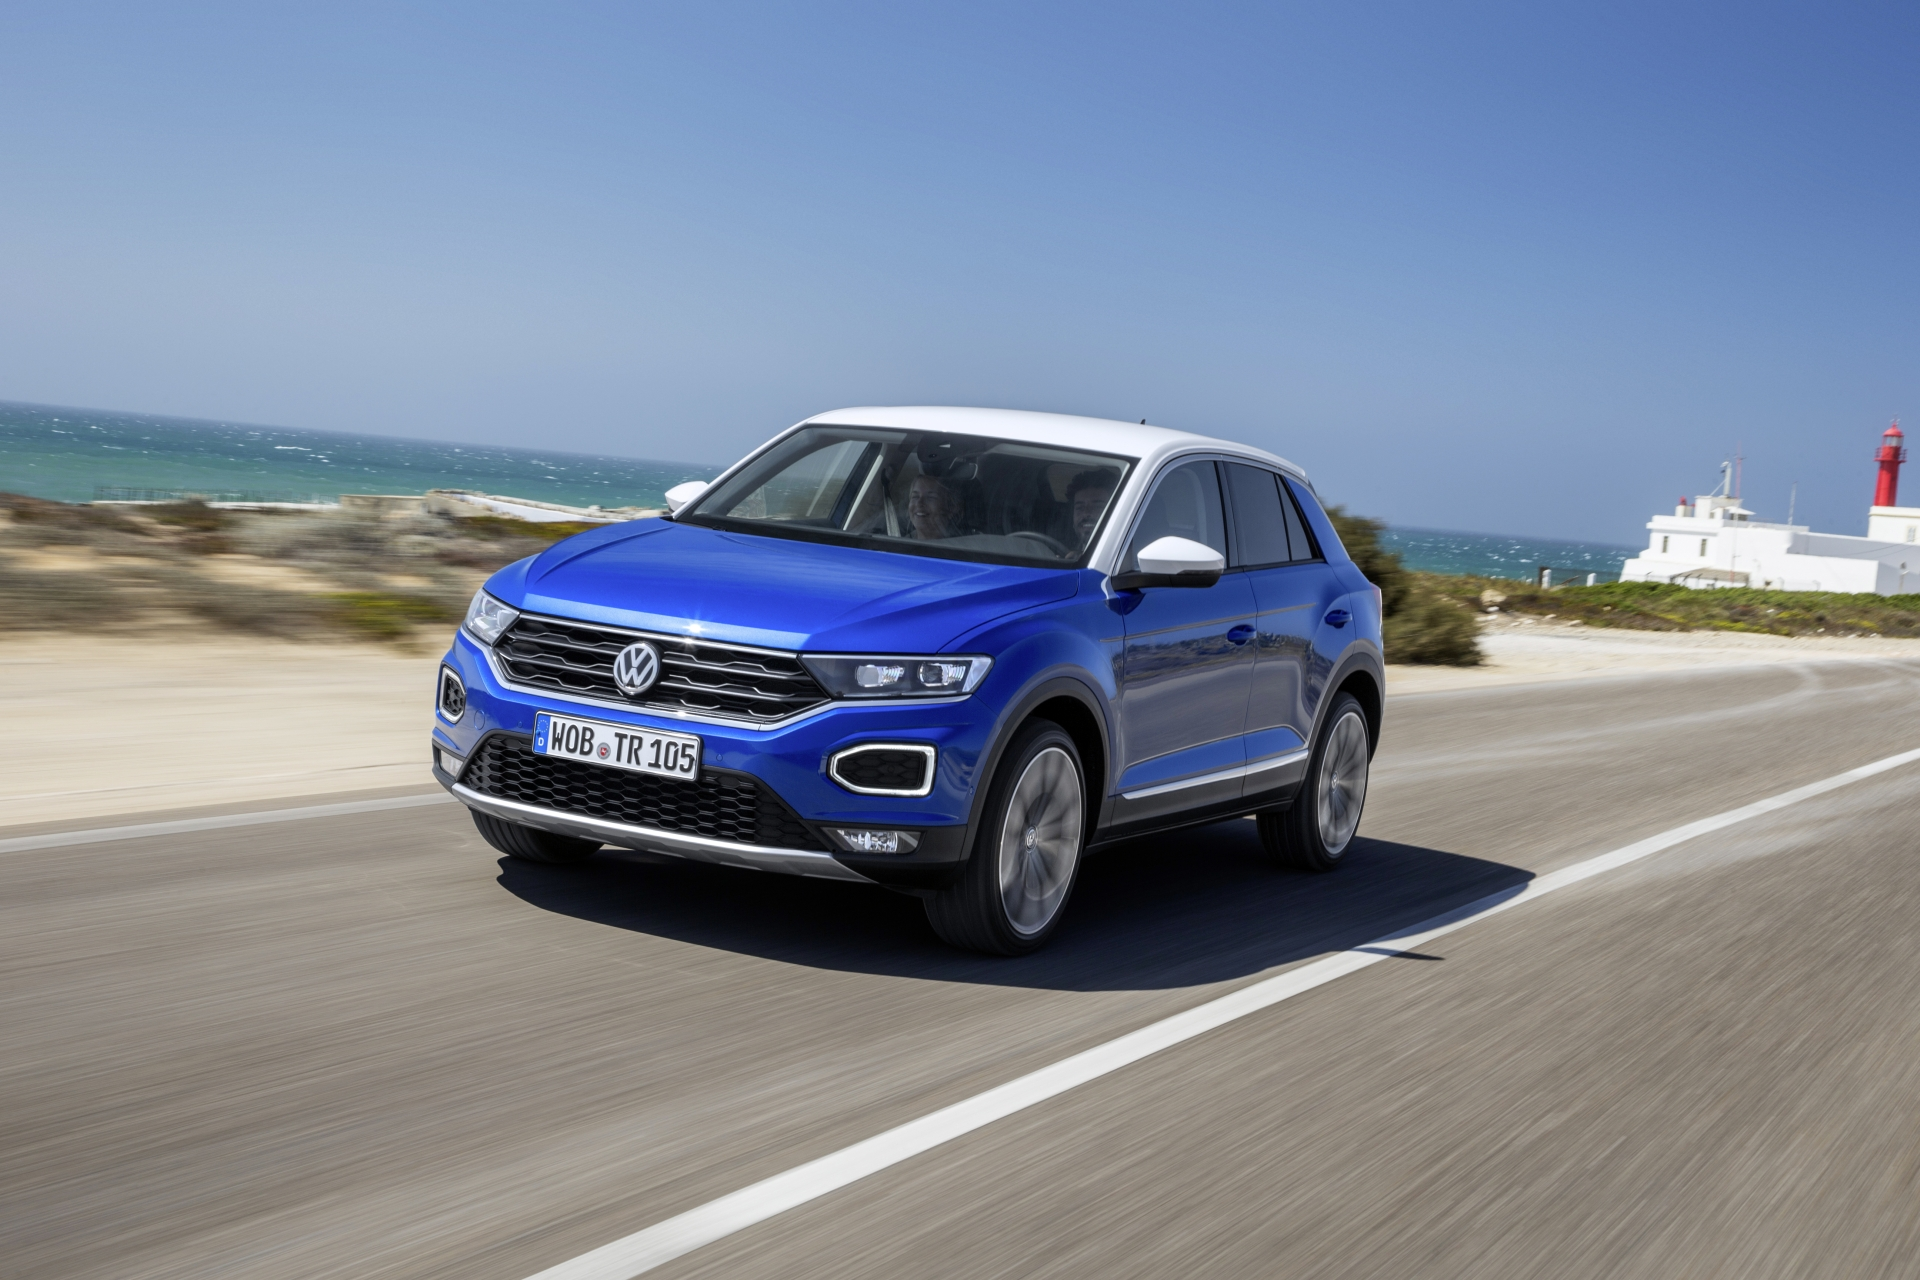 vw t roc 2 0 tdi 4motion dsg un suv cu preten ii sportive headline test drive teste auto bild. Black Bedroom Furniture Sets. Home Design Ideas